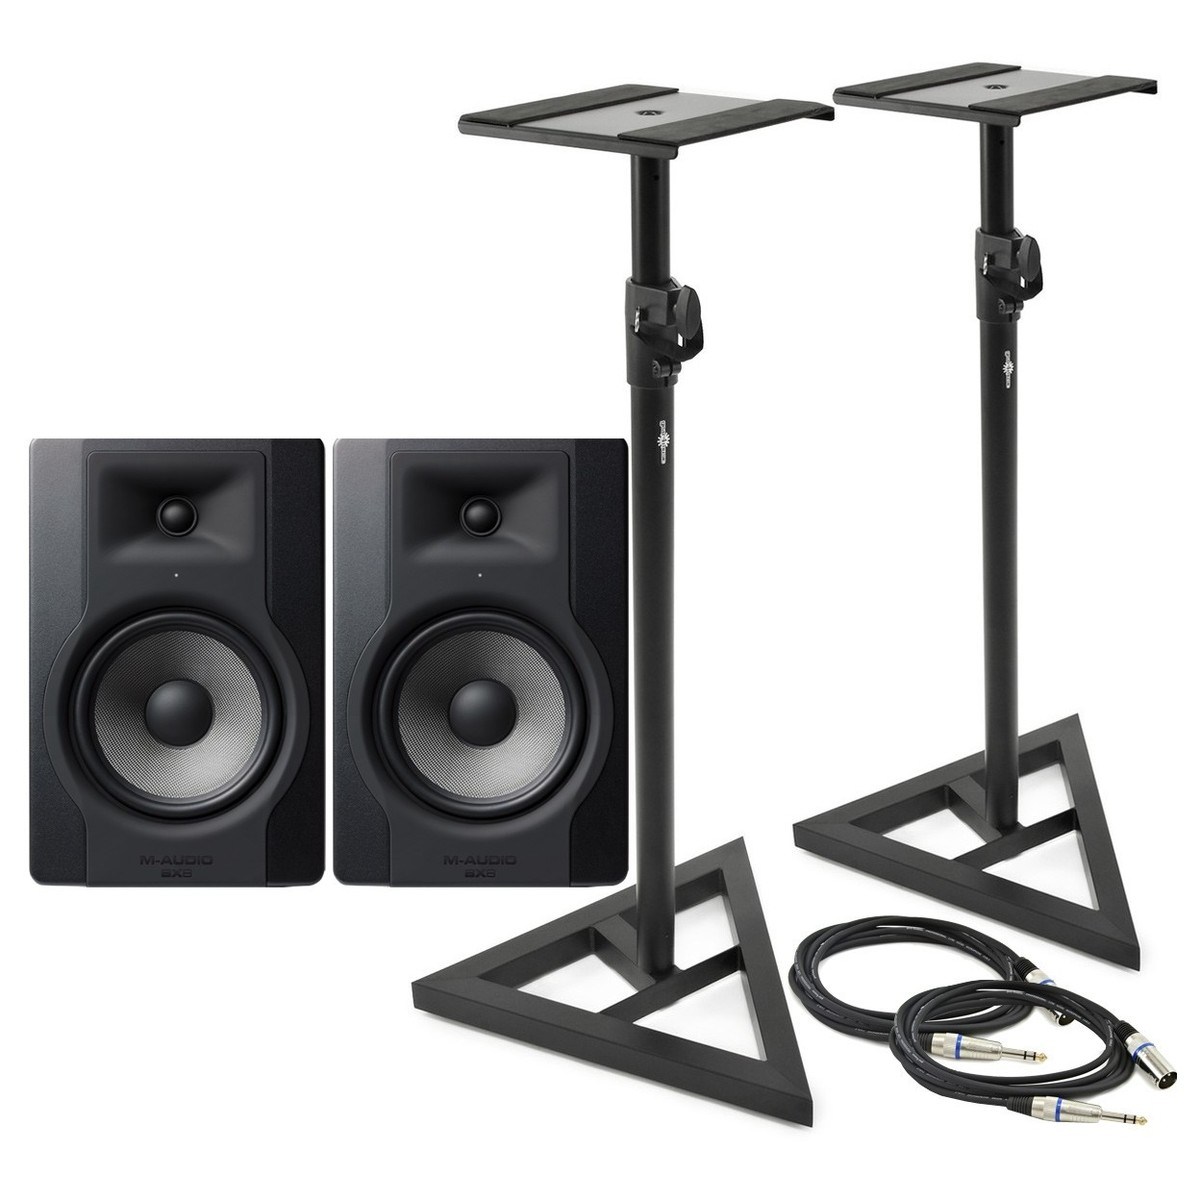 m audio bx8 d3 studio monitor pair with stands and cables at gear4music. Black Bedroom Furniture Sets. Home Design Ideas